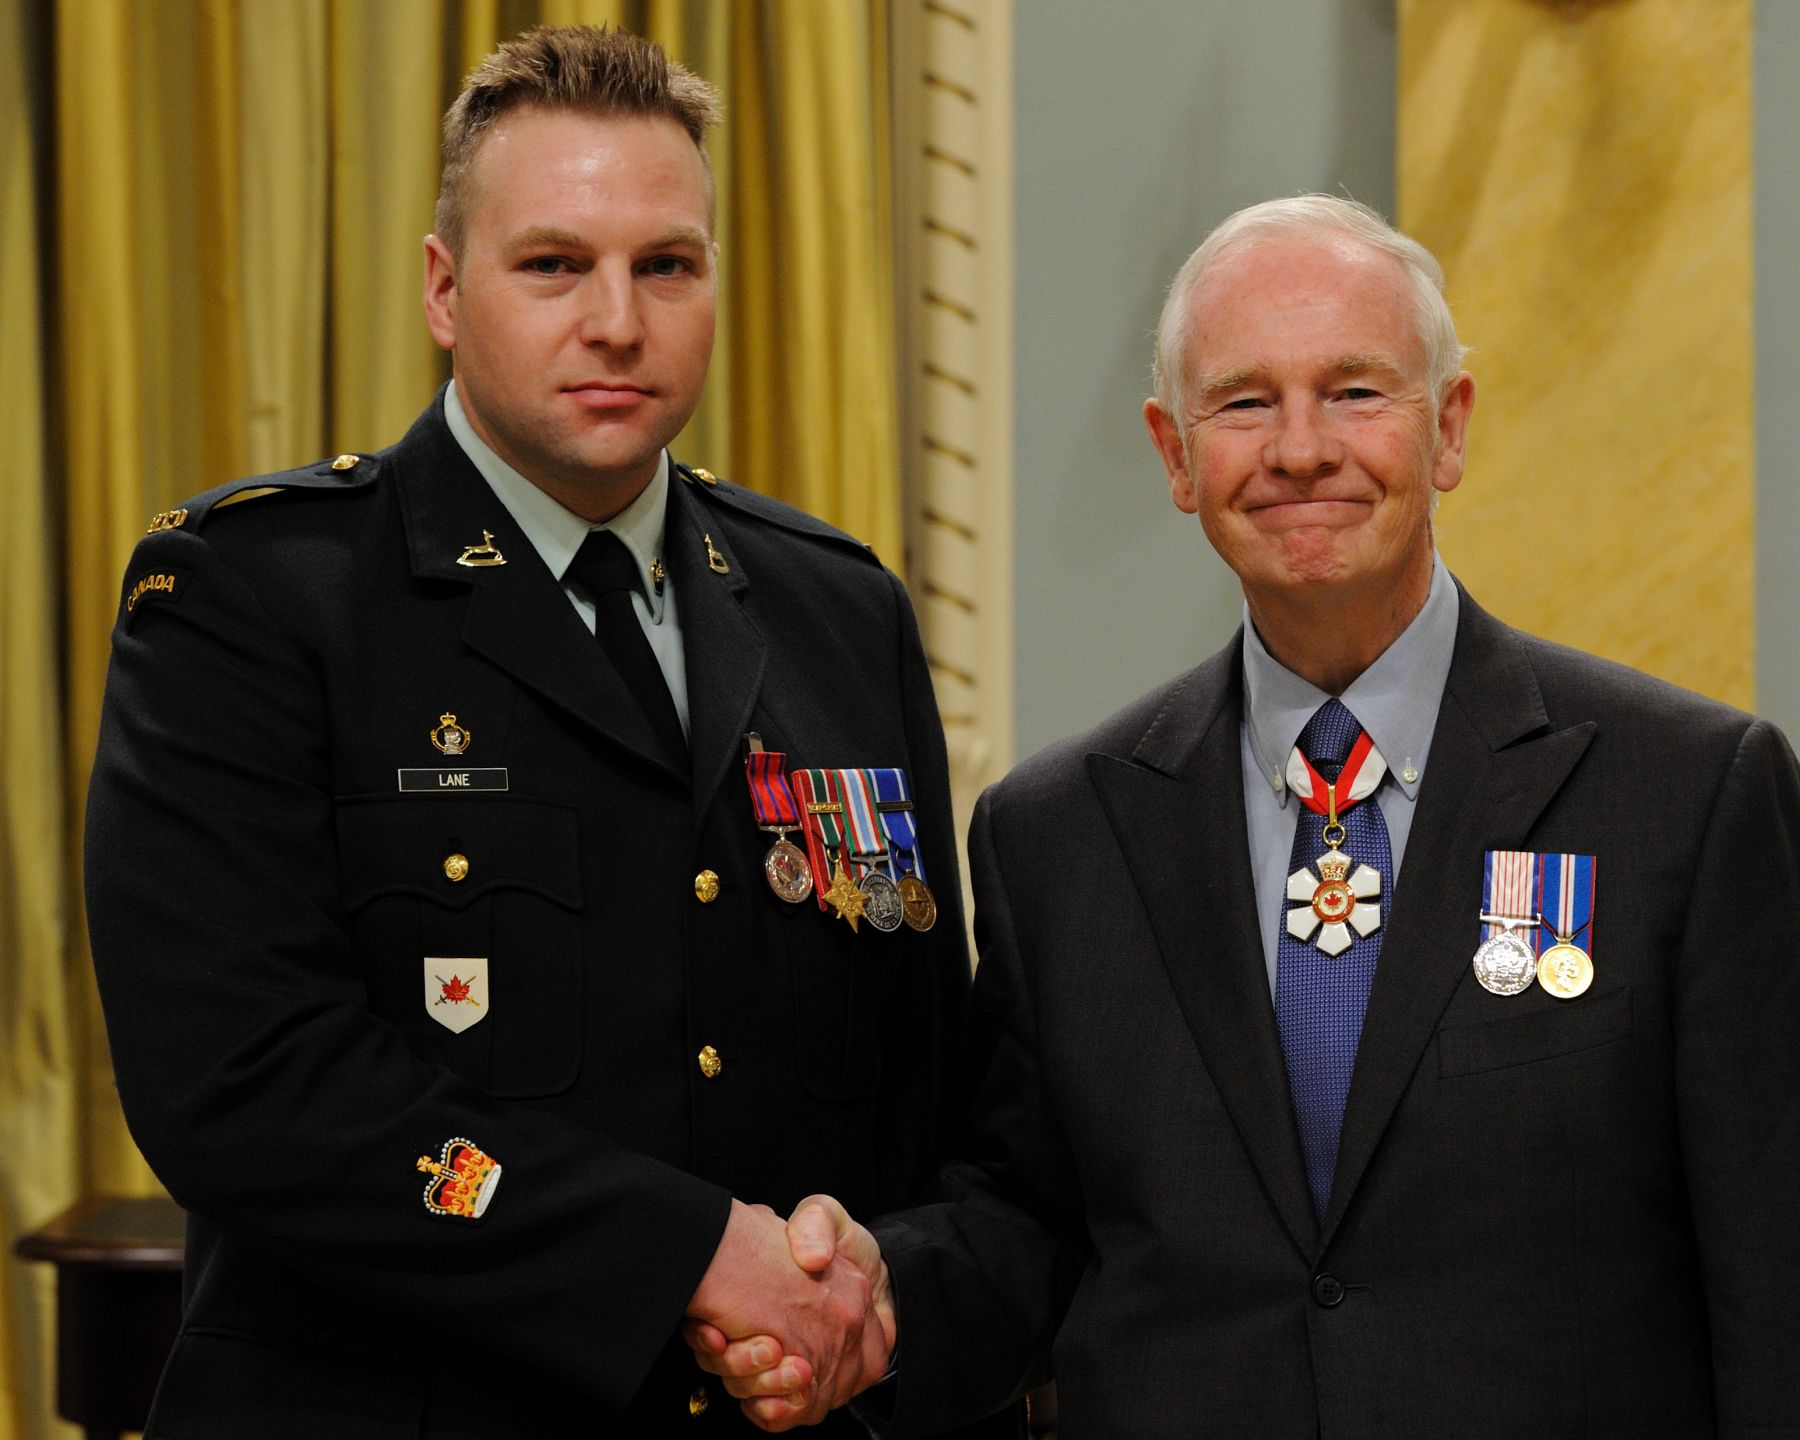 On September 23, 2007, Sergeant Roger Lane, M.B. (Grand Falls-Windsor, Newfoundland and Labrador), then master corporal, apprehended two men who had robbed a grocery store, in Edmonton, Alberta. Sergeant Lane was entering the store when he noticed a man wearing a disguise running towards him and realized that a robbery had just taken place. He caught the suspect, wrestled him to the ground, removed the gun from the suspect's waistband and threw it out of reach. While other shoppers assisted in restraining the robber, Sergeant Lane grabbed a second suspect who was running away. As the man struggled to free himself, he sprayed tear gas in Sergeant Lane's face. Although temporarily blinded, Sergeant Lane managed to subdue him and held onto him until the police arrived minutes later.